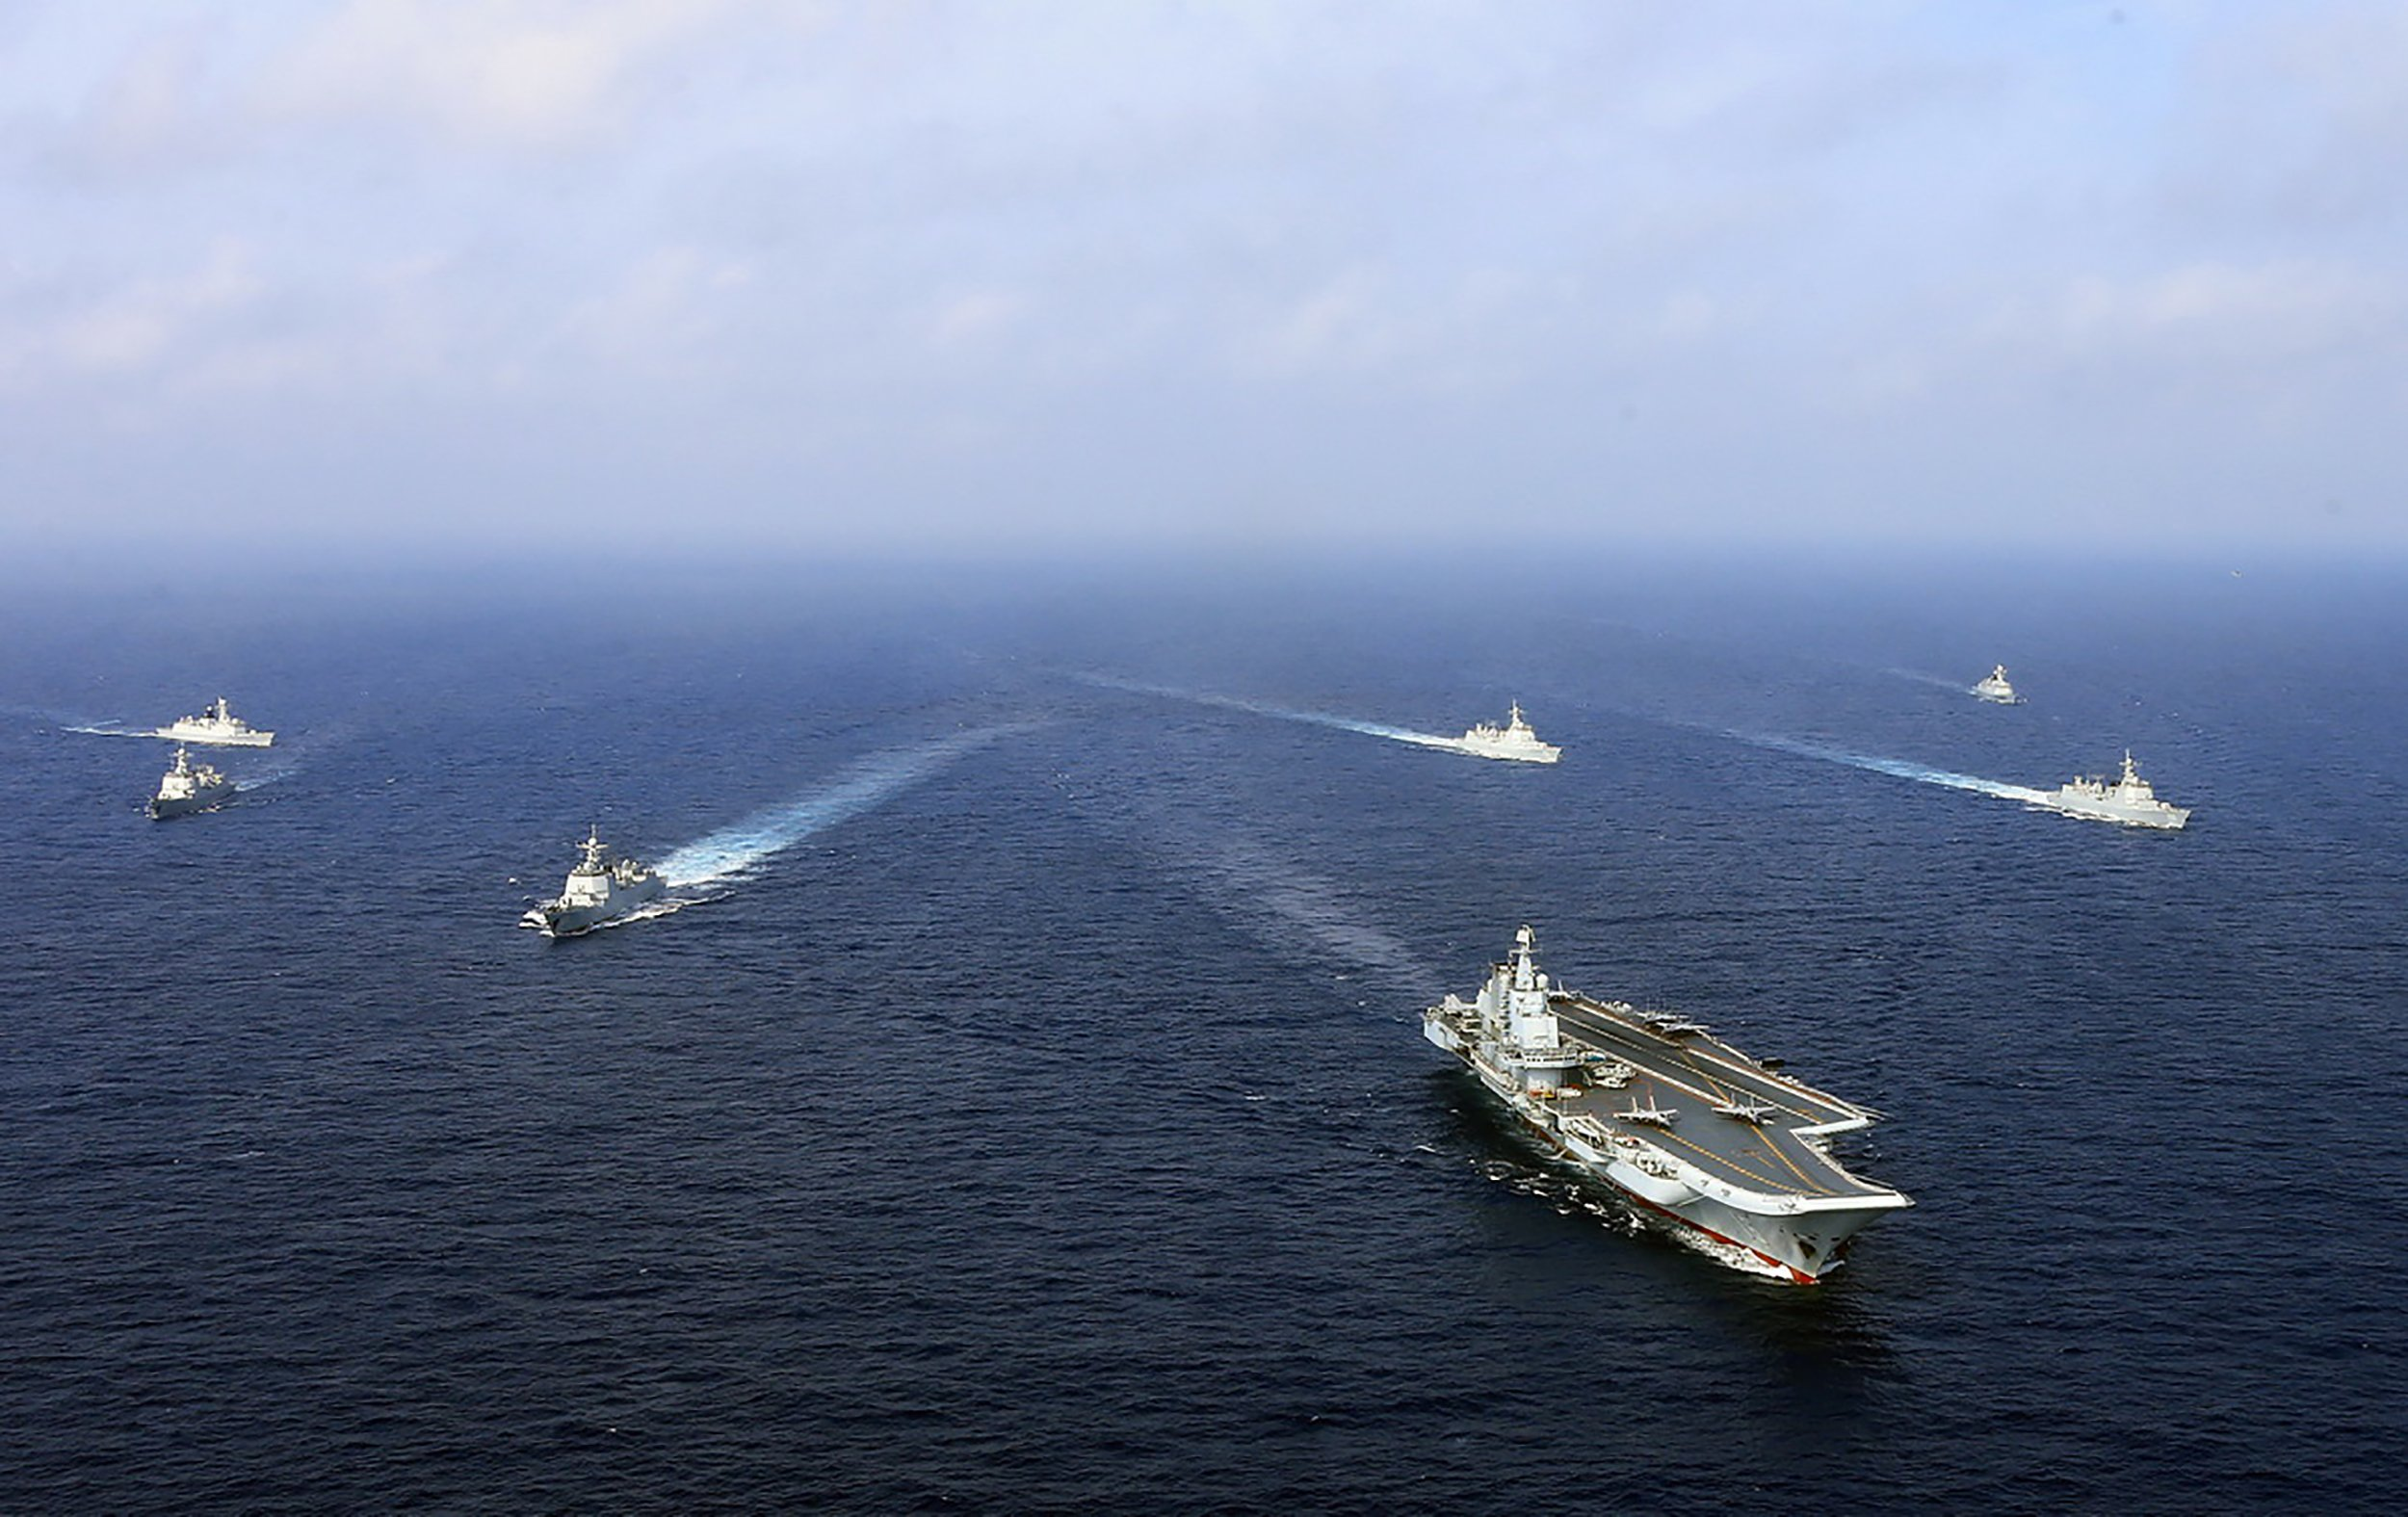 China Navy Taiwan South China Sea U.S.